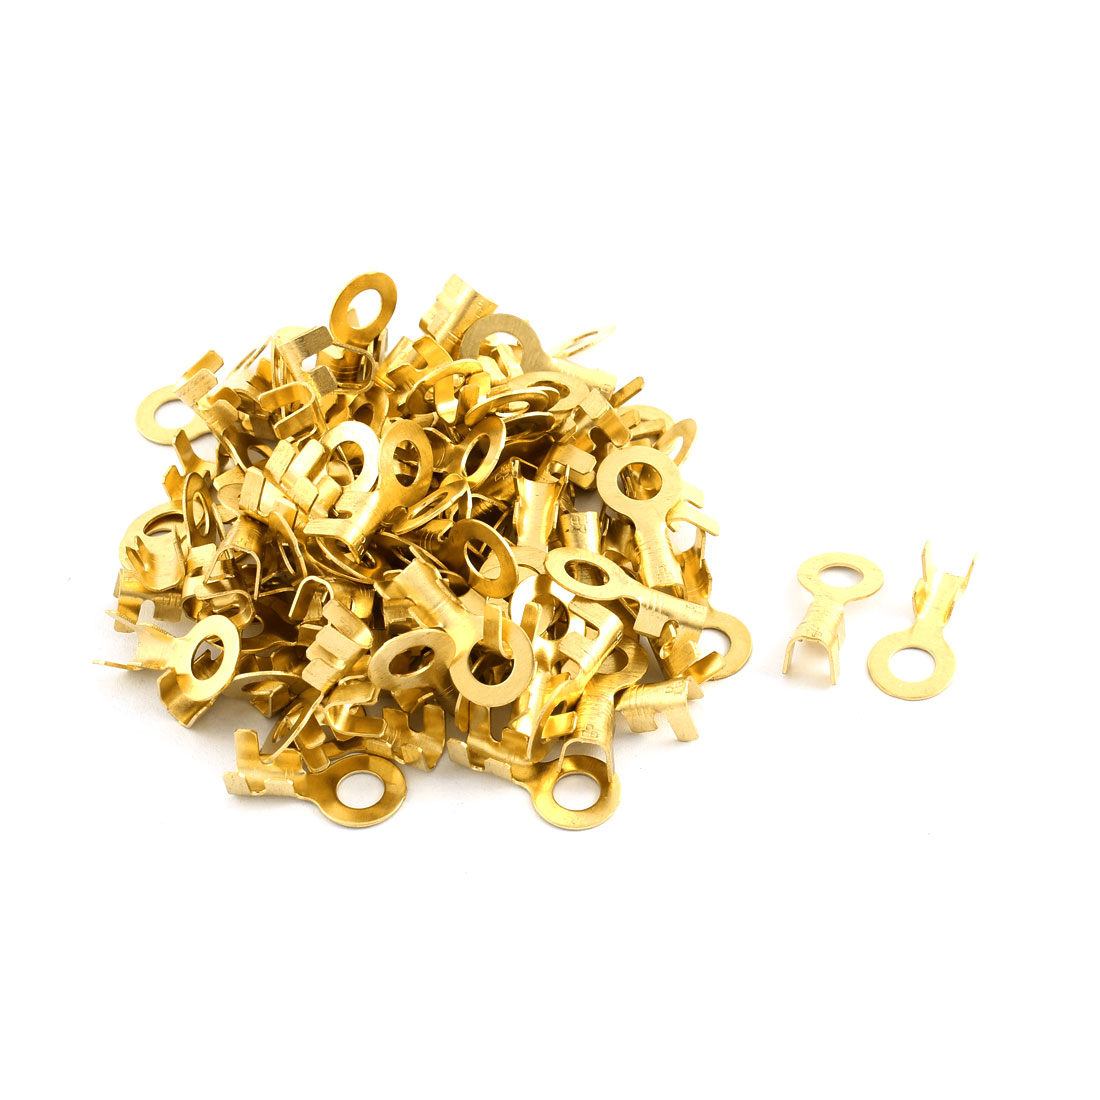 100 Pcs Open Cable Connector Ring Tongue Copper Passing Through Lug Terminal 21mm